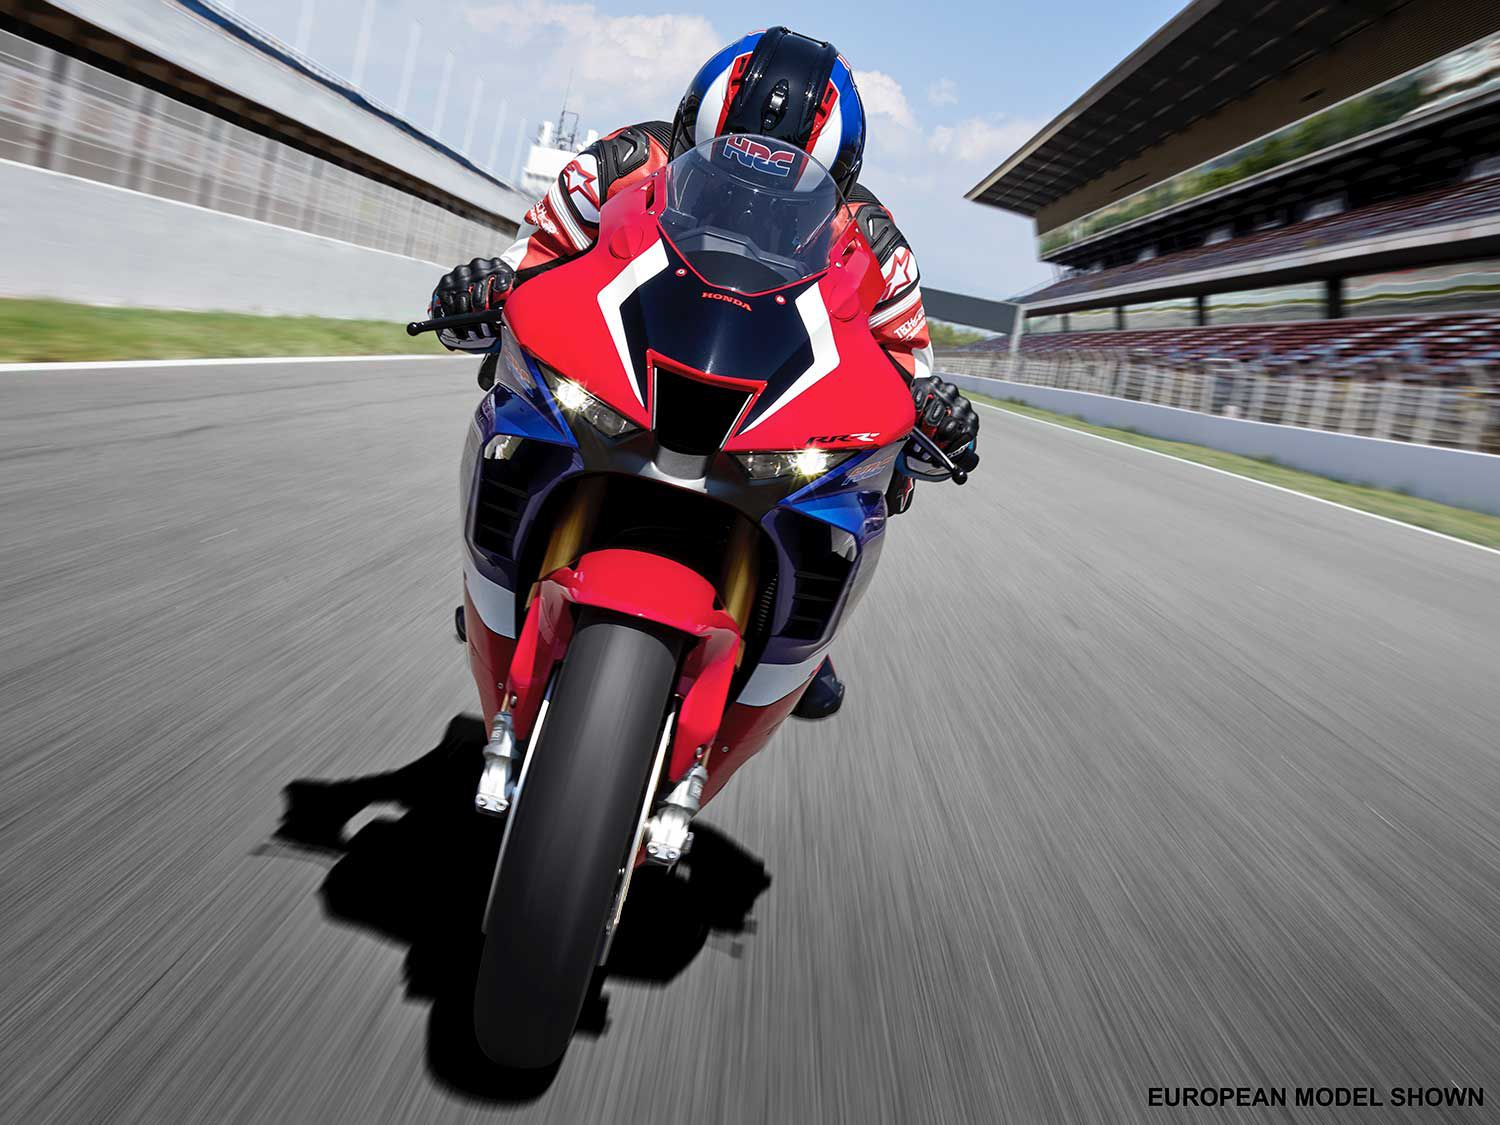 After only three years, Honda fully updates its 2021 CBR1000RR-R with a clear focus on racing performance.